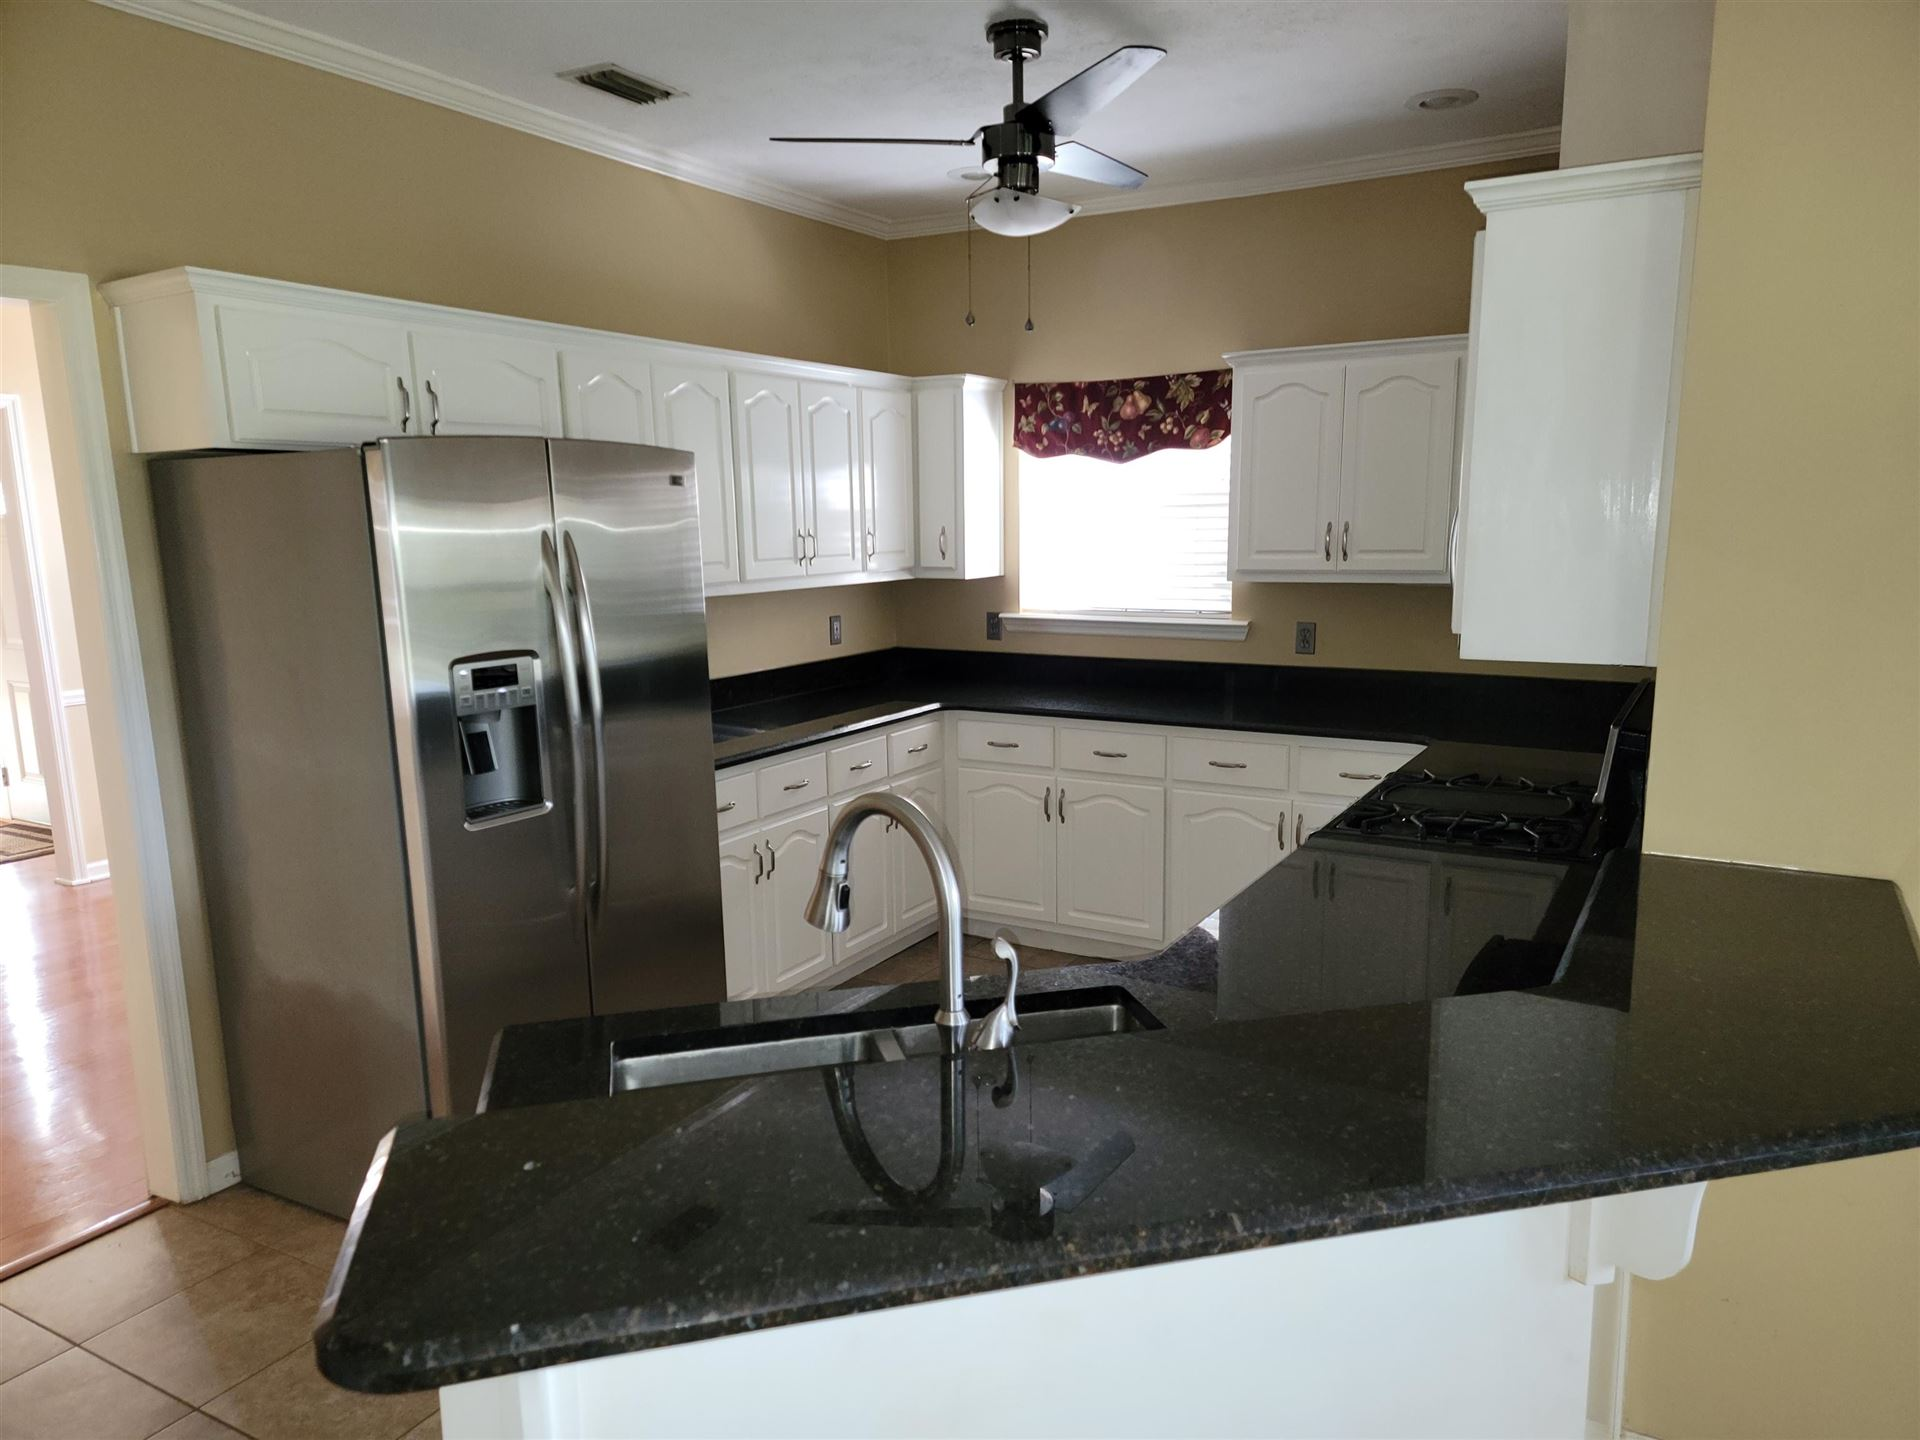 Photo of 1154 RONDS POINTE Drive, TALLAHASSEE, FL 32312 (MLS # 338691)